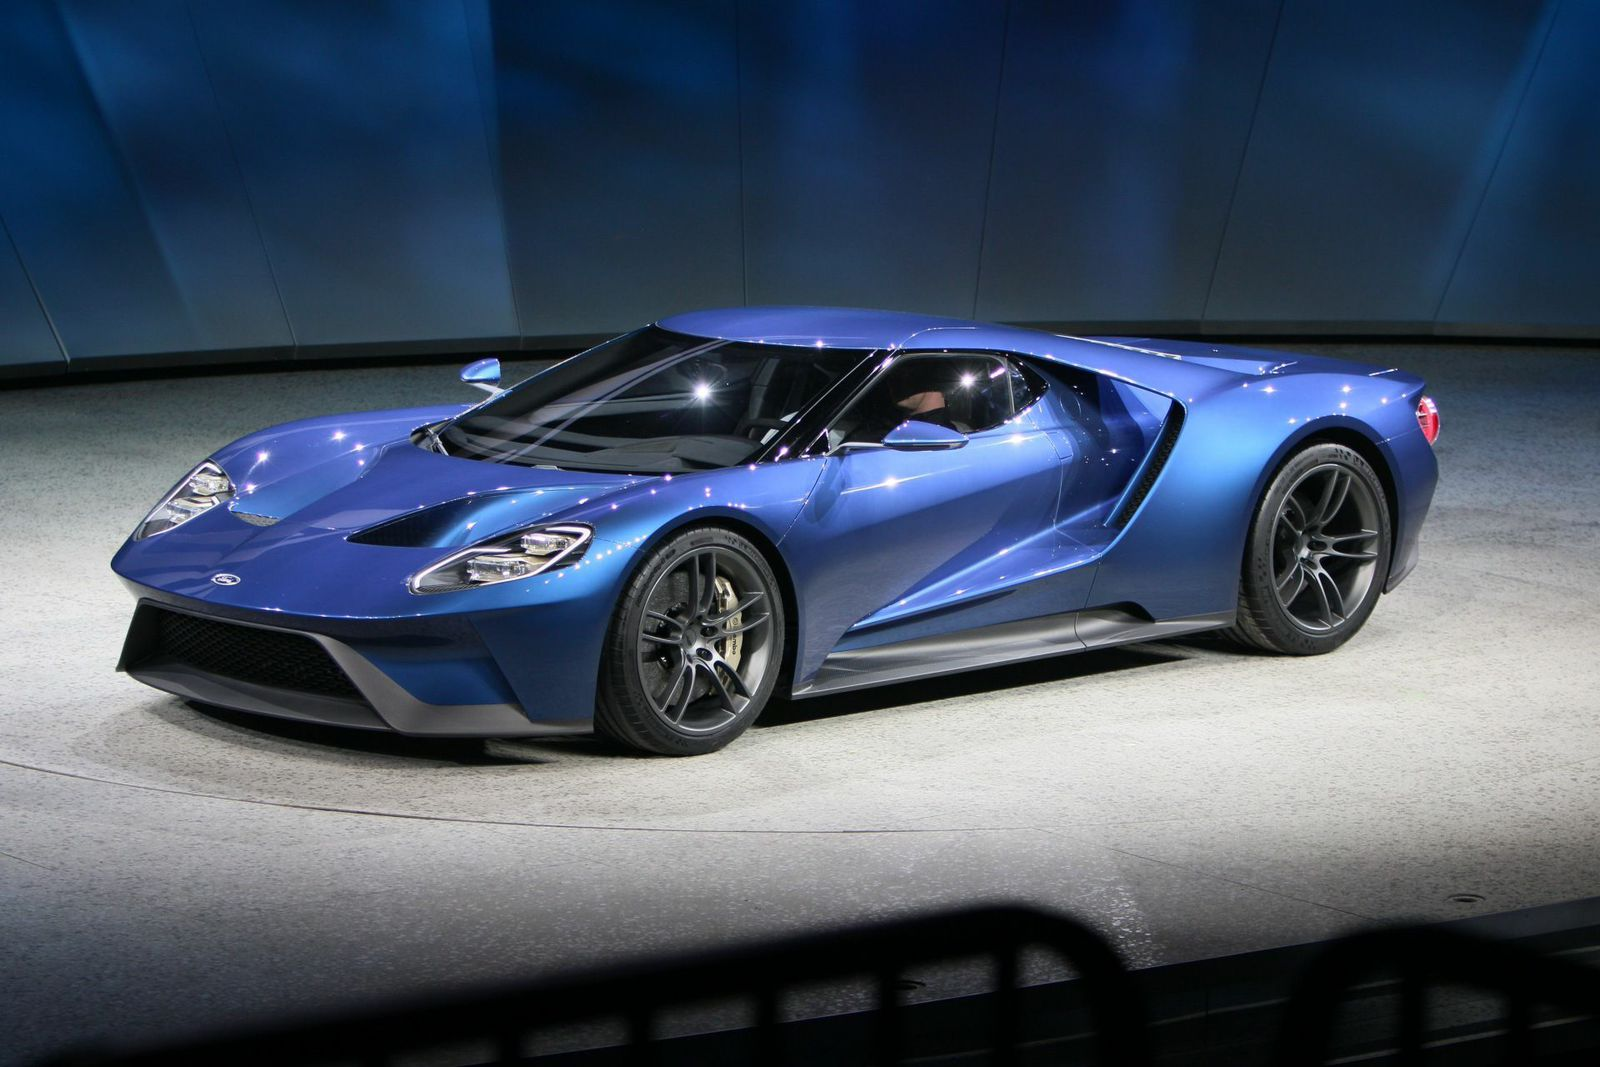 Ford unveils 600 hp twin turbo ecoboost v6 gt supercar at detroit auto show